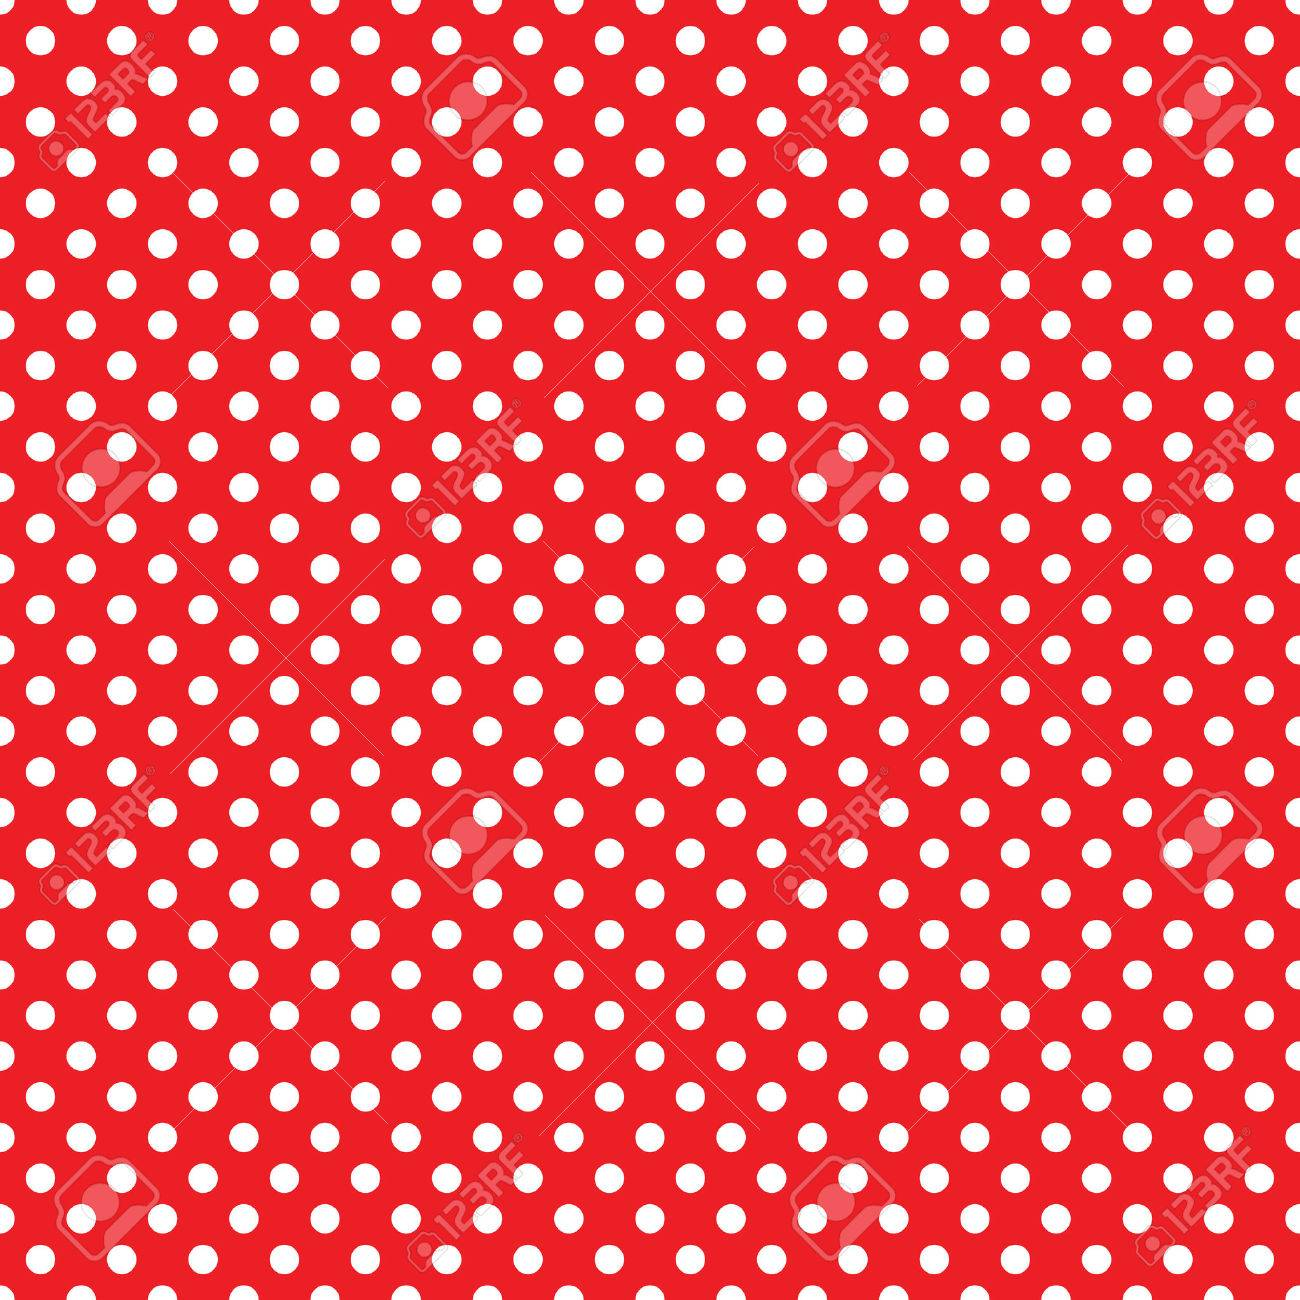 Seamless Red Polka Dot Background Royalty Free Cliparts Vectors